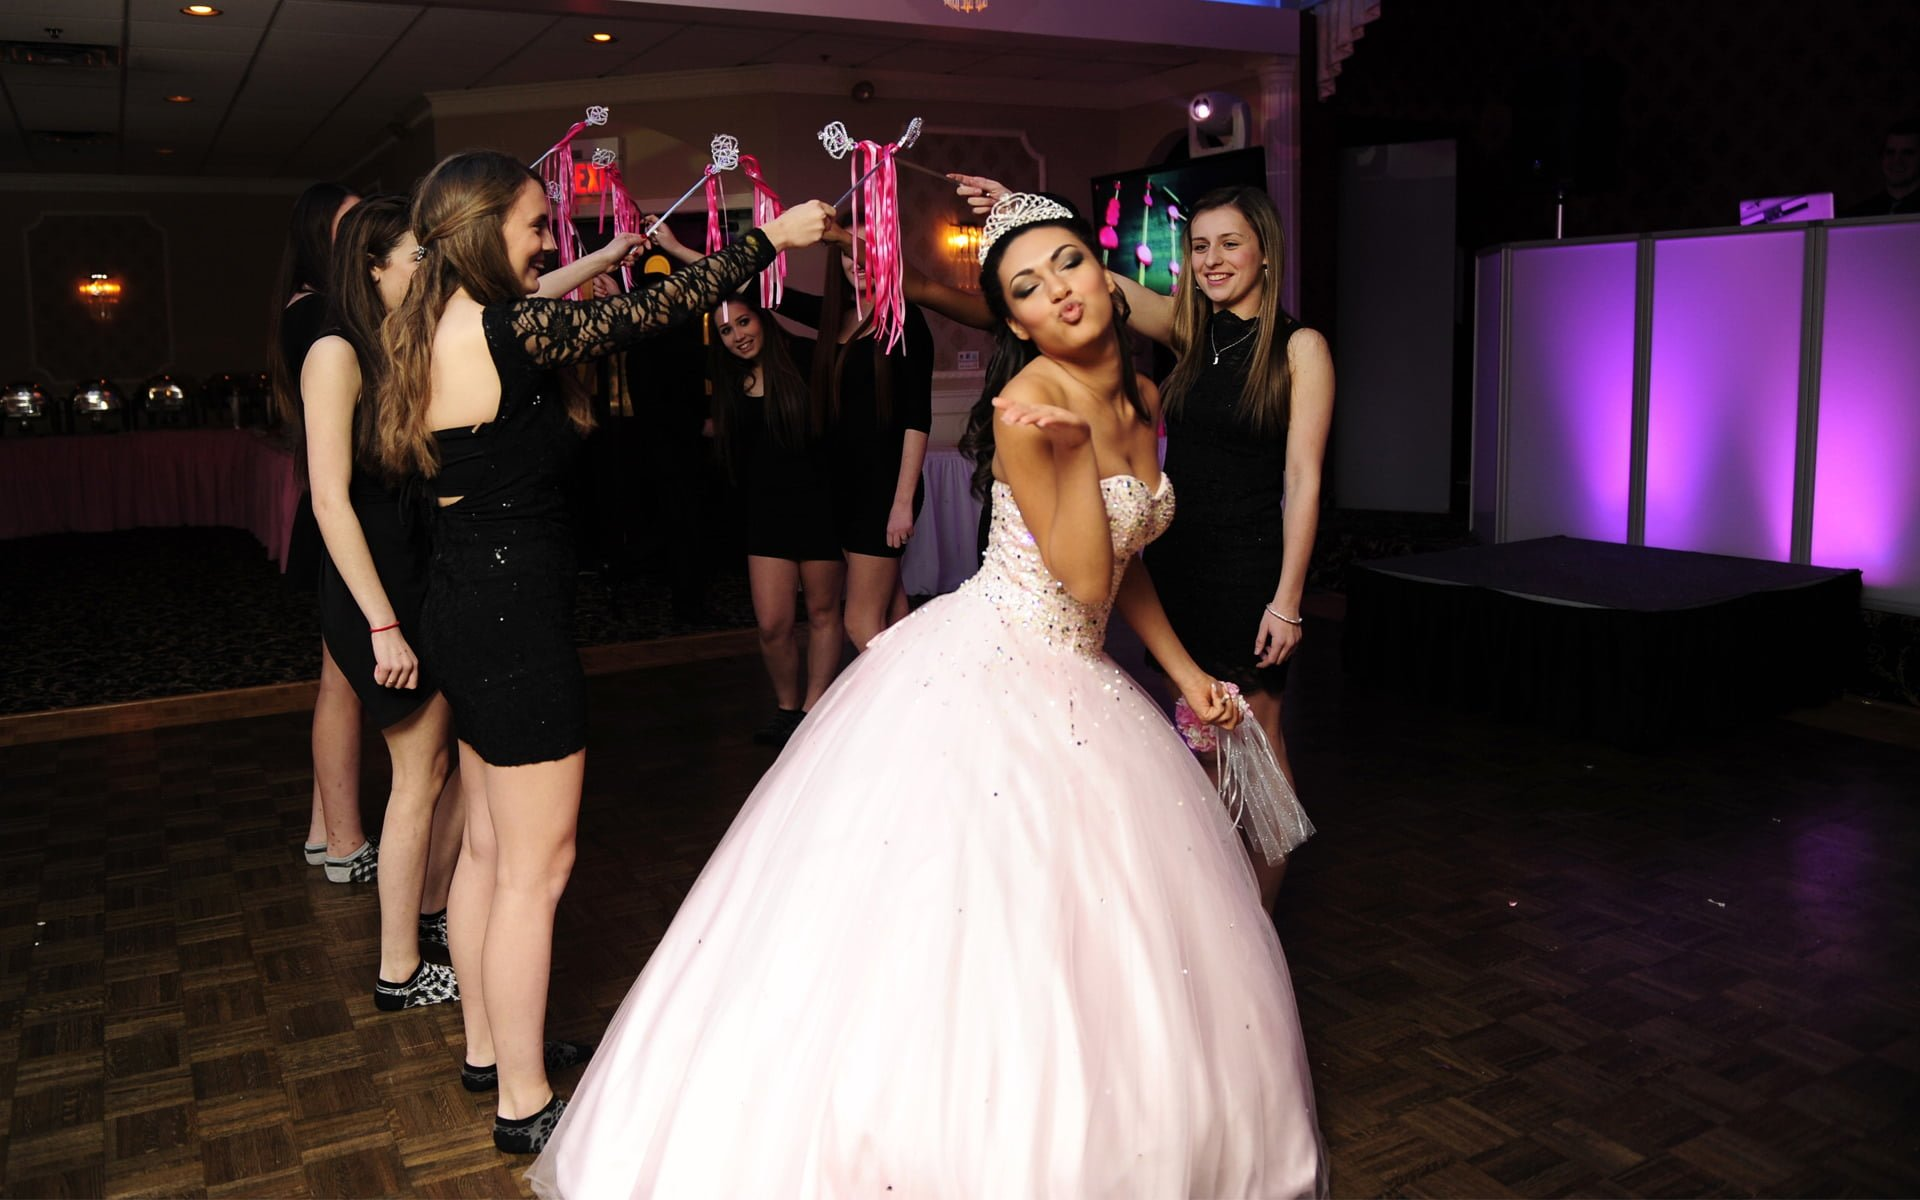 Best-Entrance-Song-Sweet-Sixteen-NJ-DJ-1920-1200